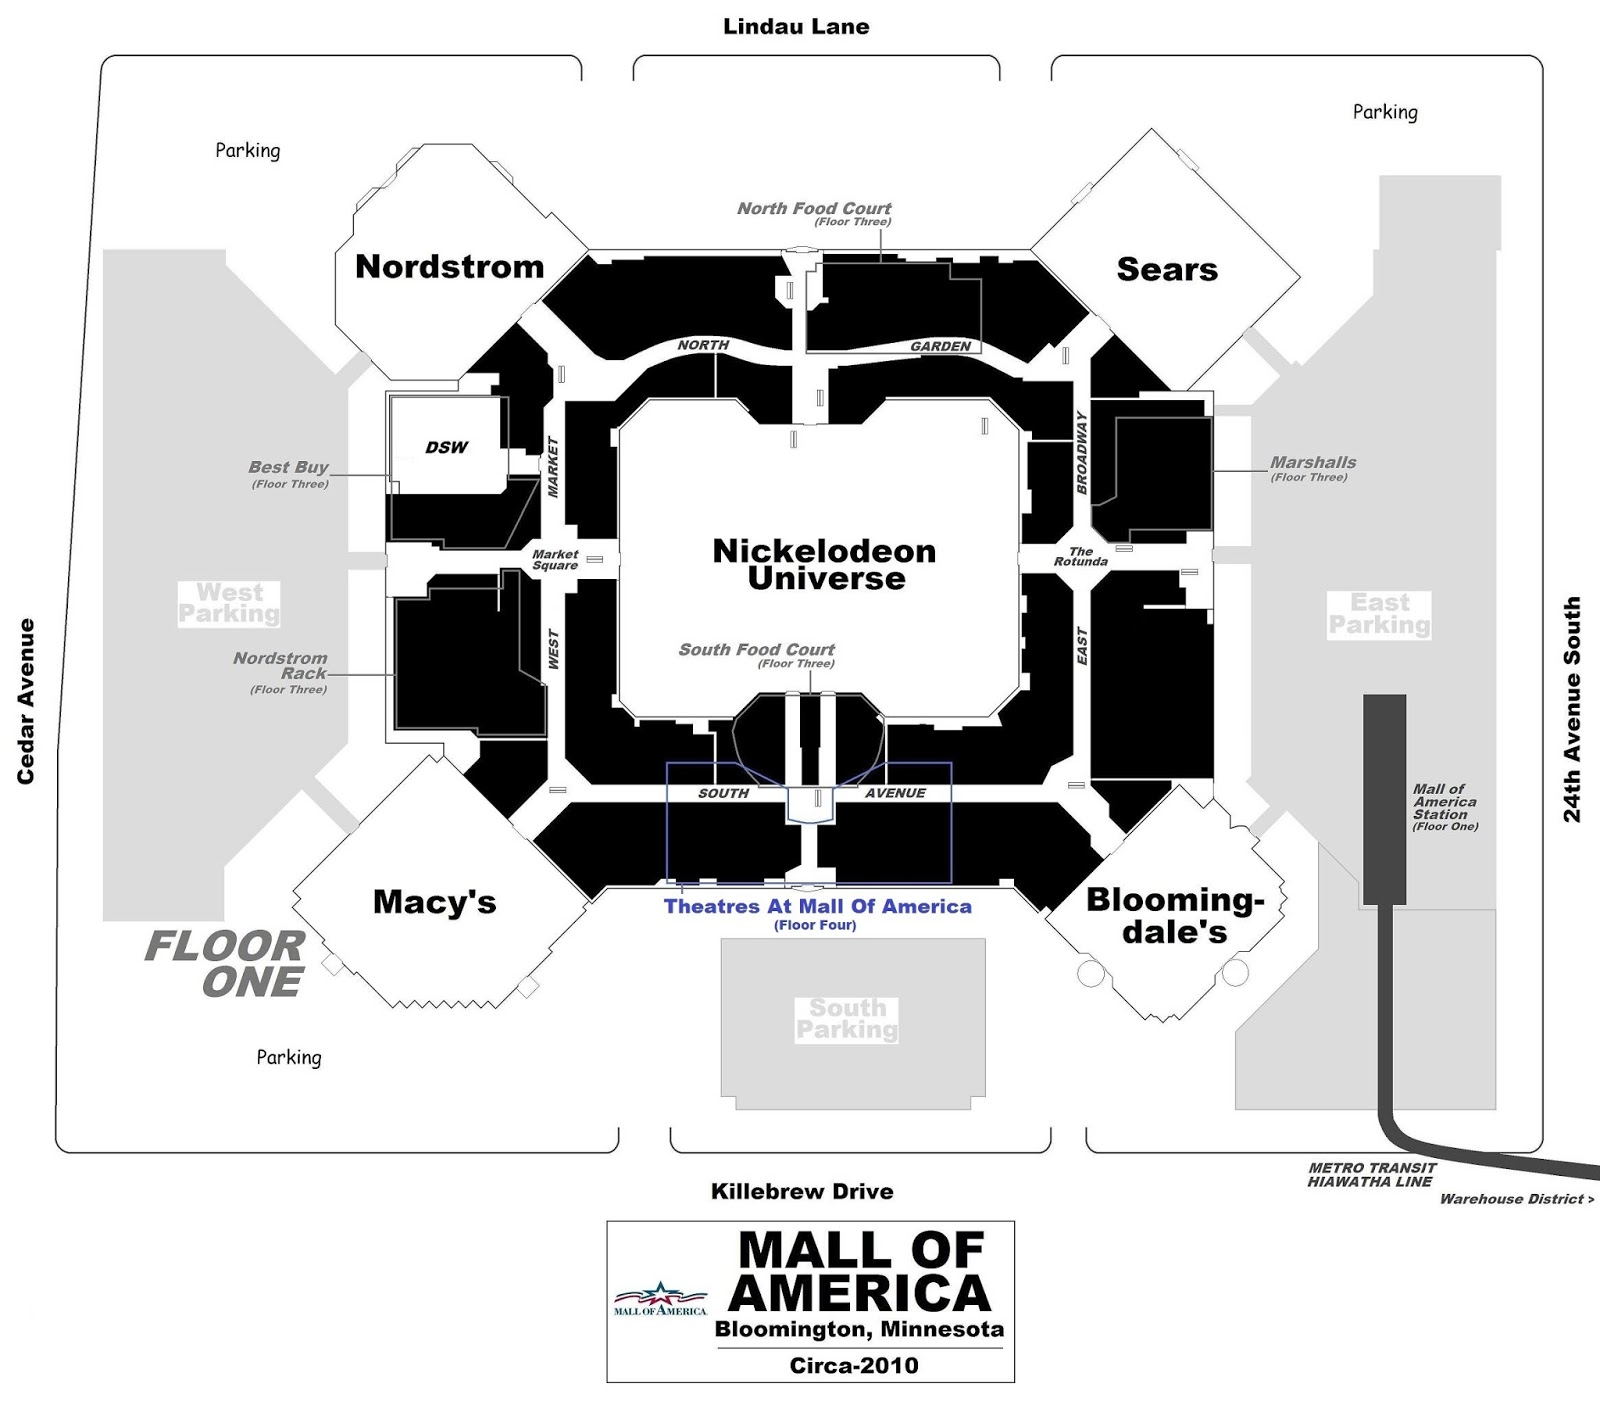 Present Day Plan Of City Of Lakes Multi on Nordstrom Store Floor Plan